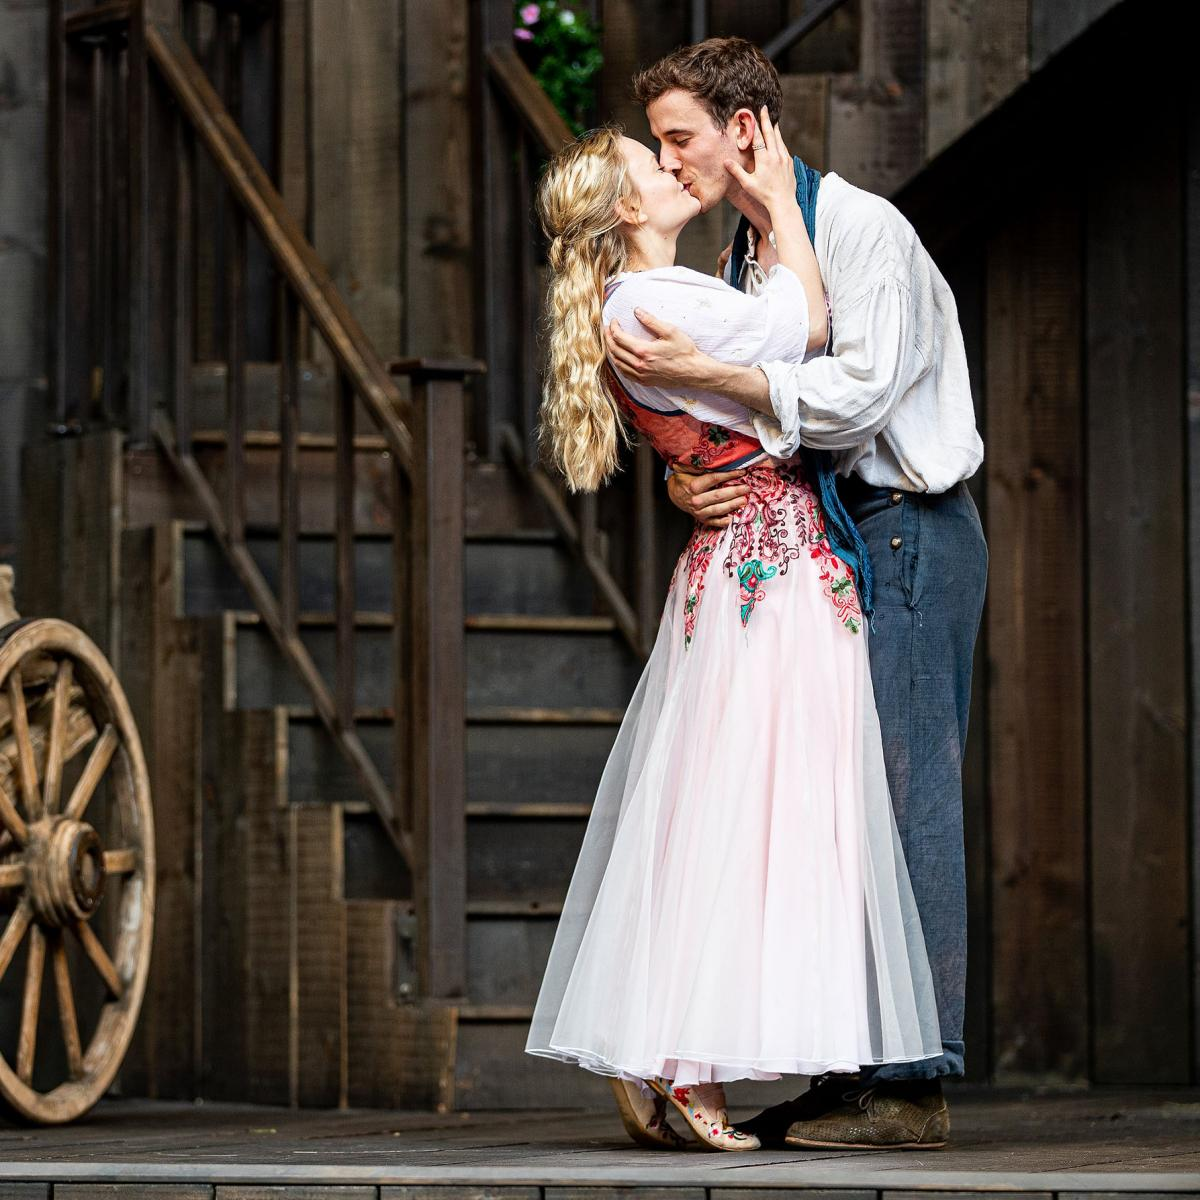 Romeo and Juliet at Shakespeare's Rose Theatre, Blenheim Palace